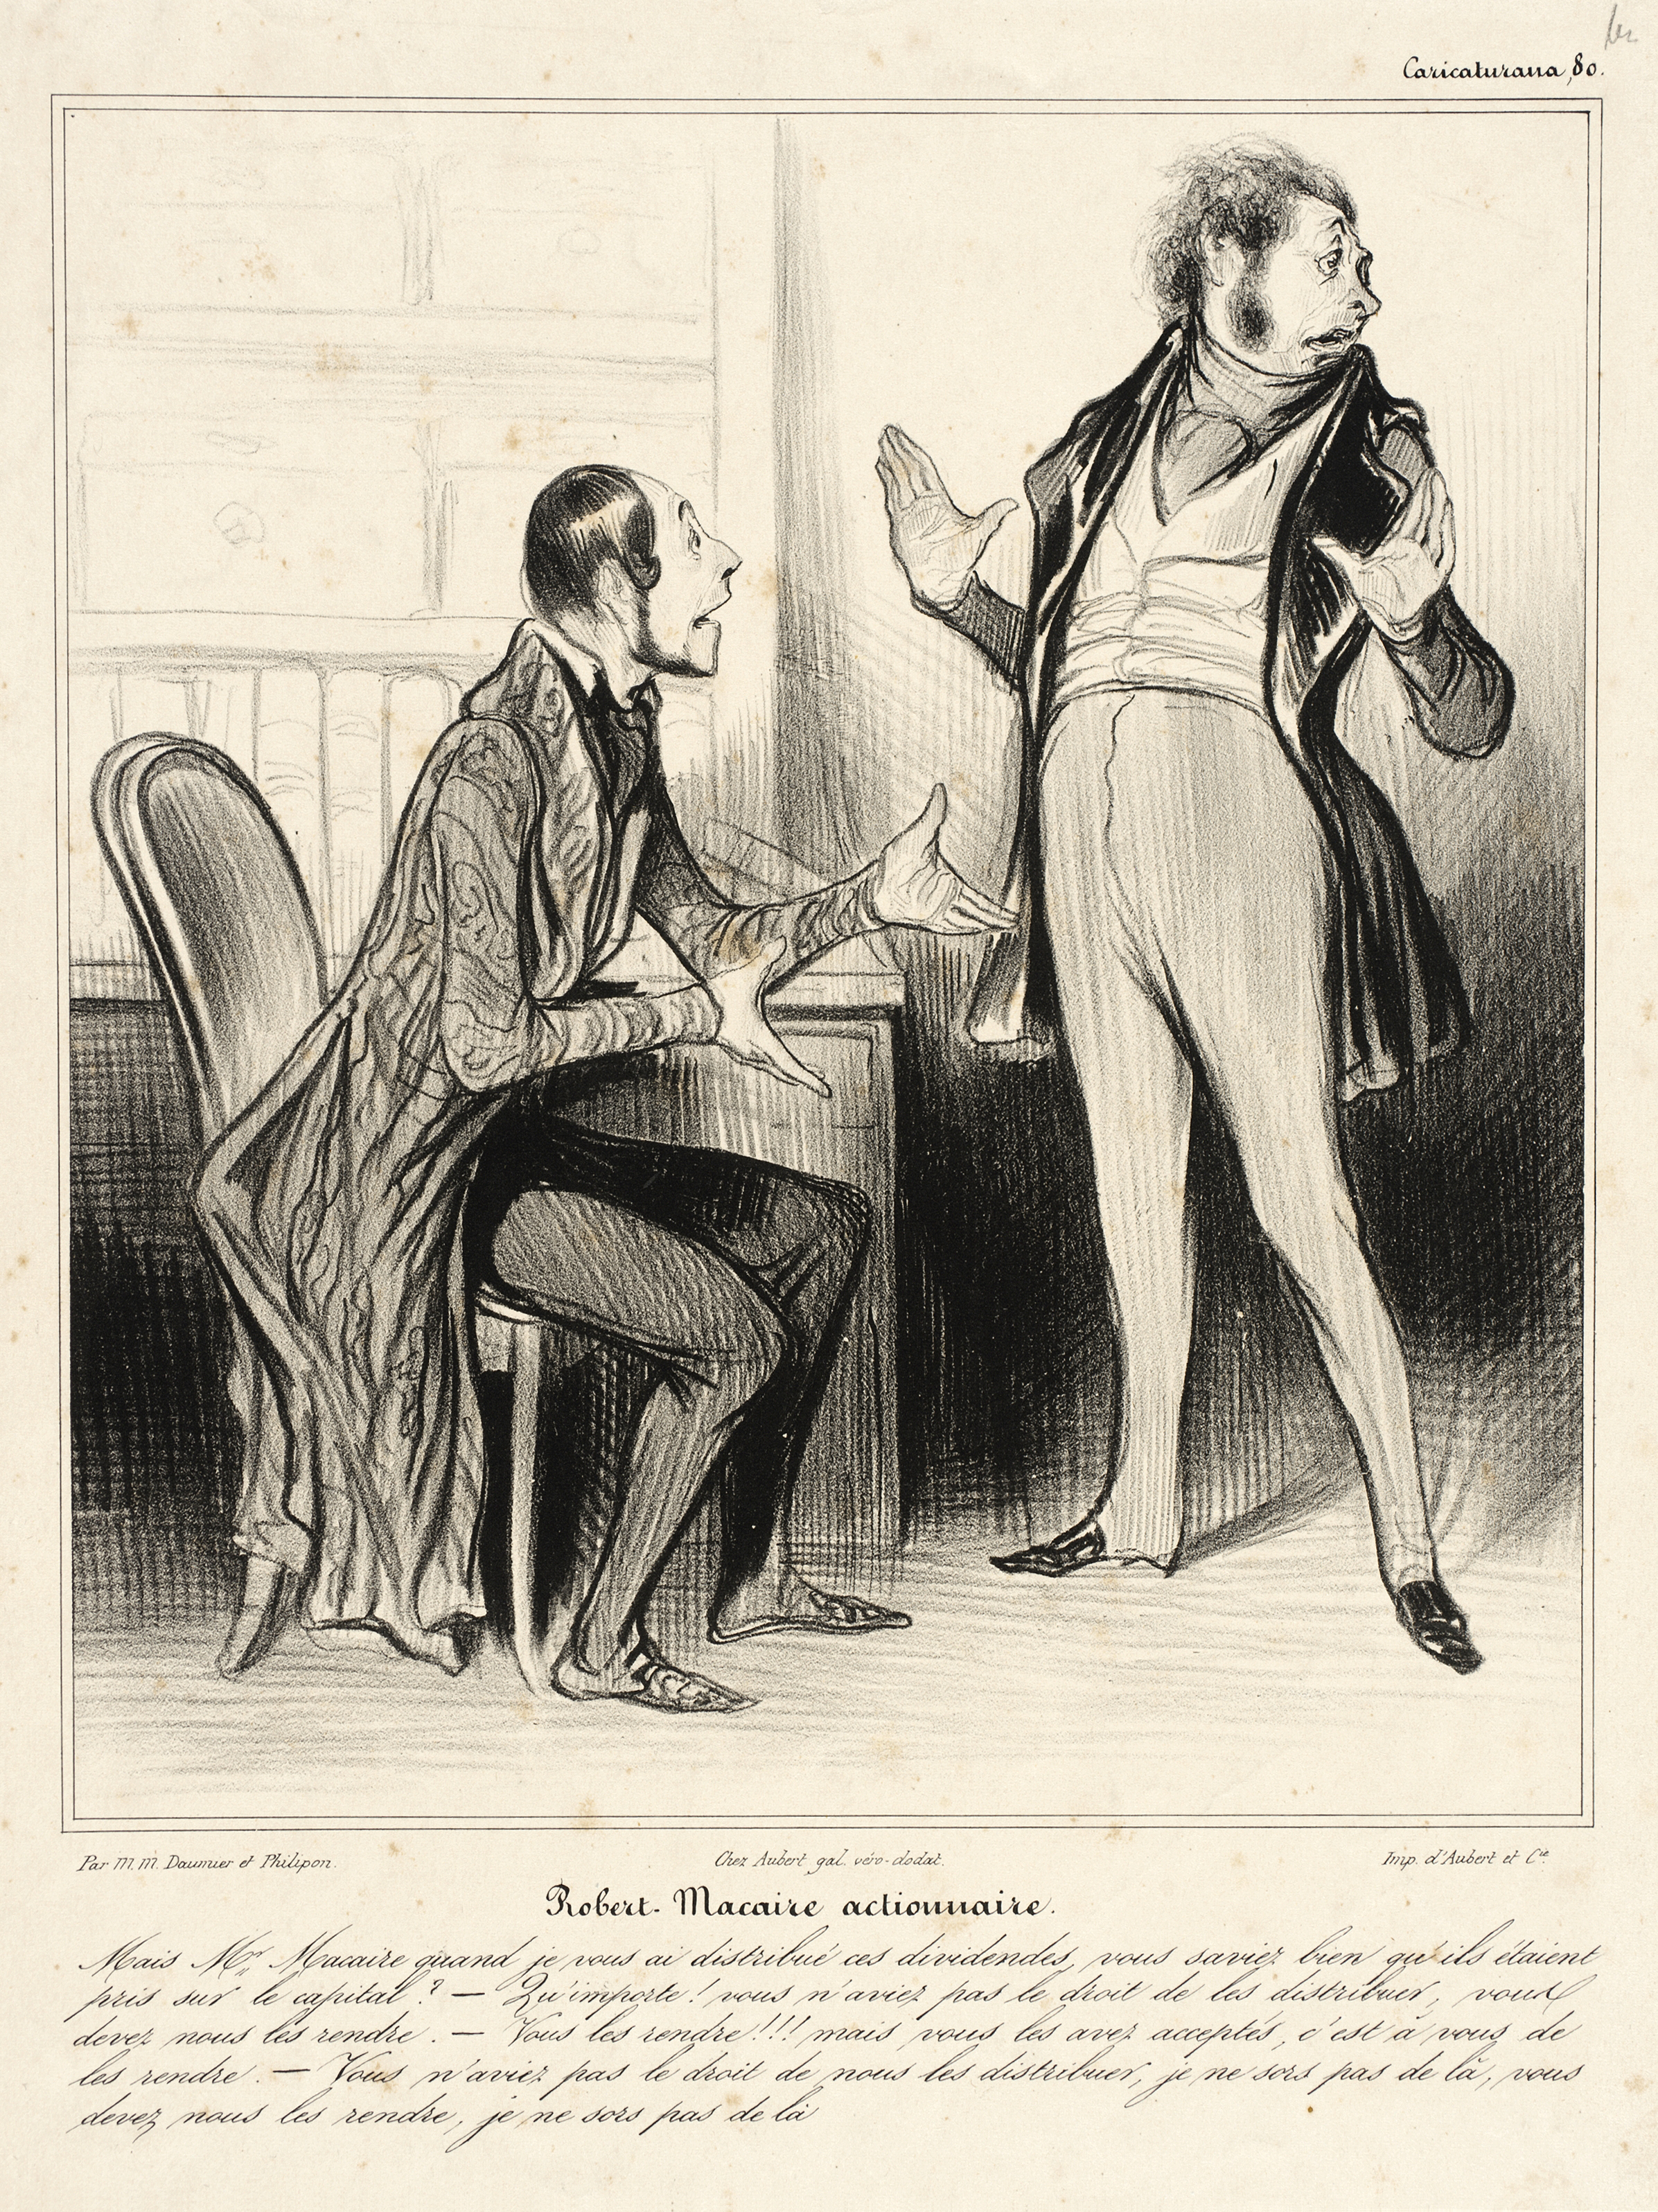 Robert Macaire actionnaire by Honoré Daumier published in  Le Charivari on May 12, 1838. PD Source: Wikimedia Commons